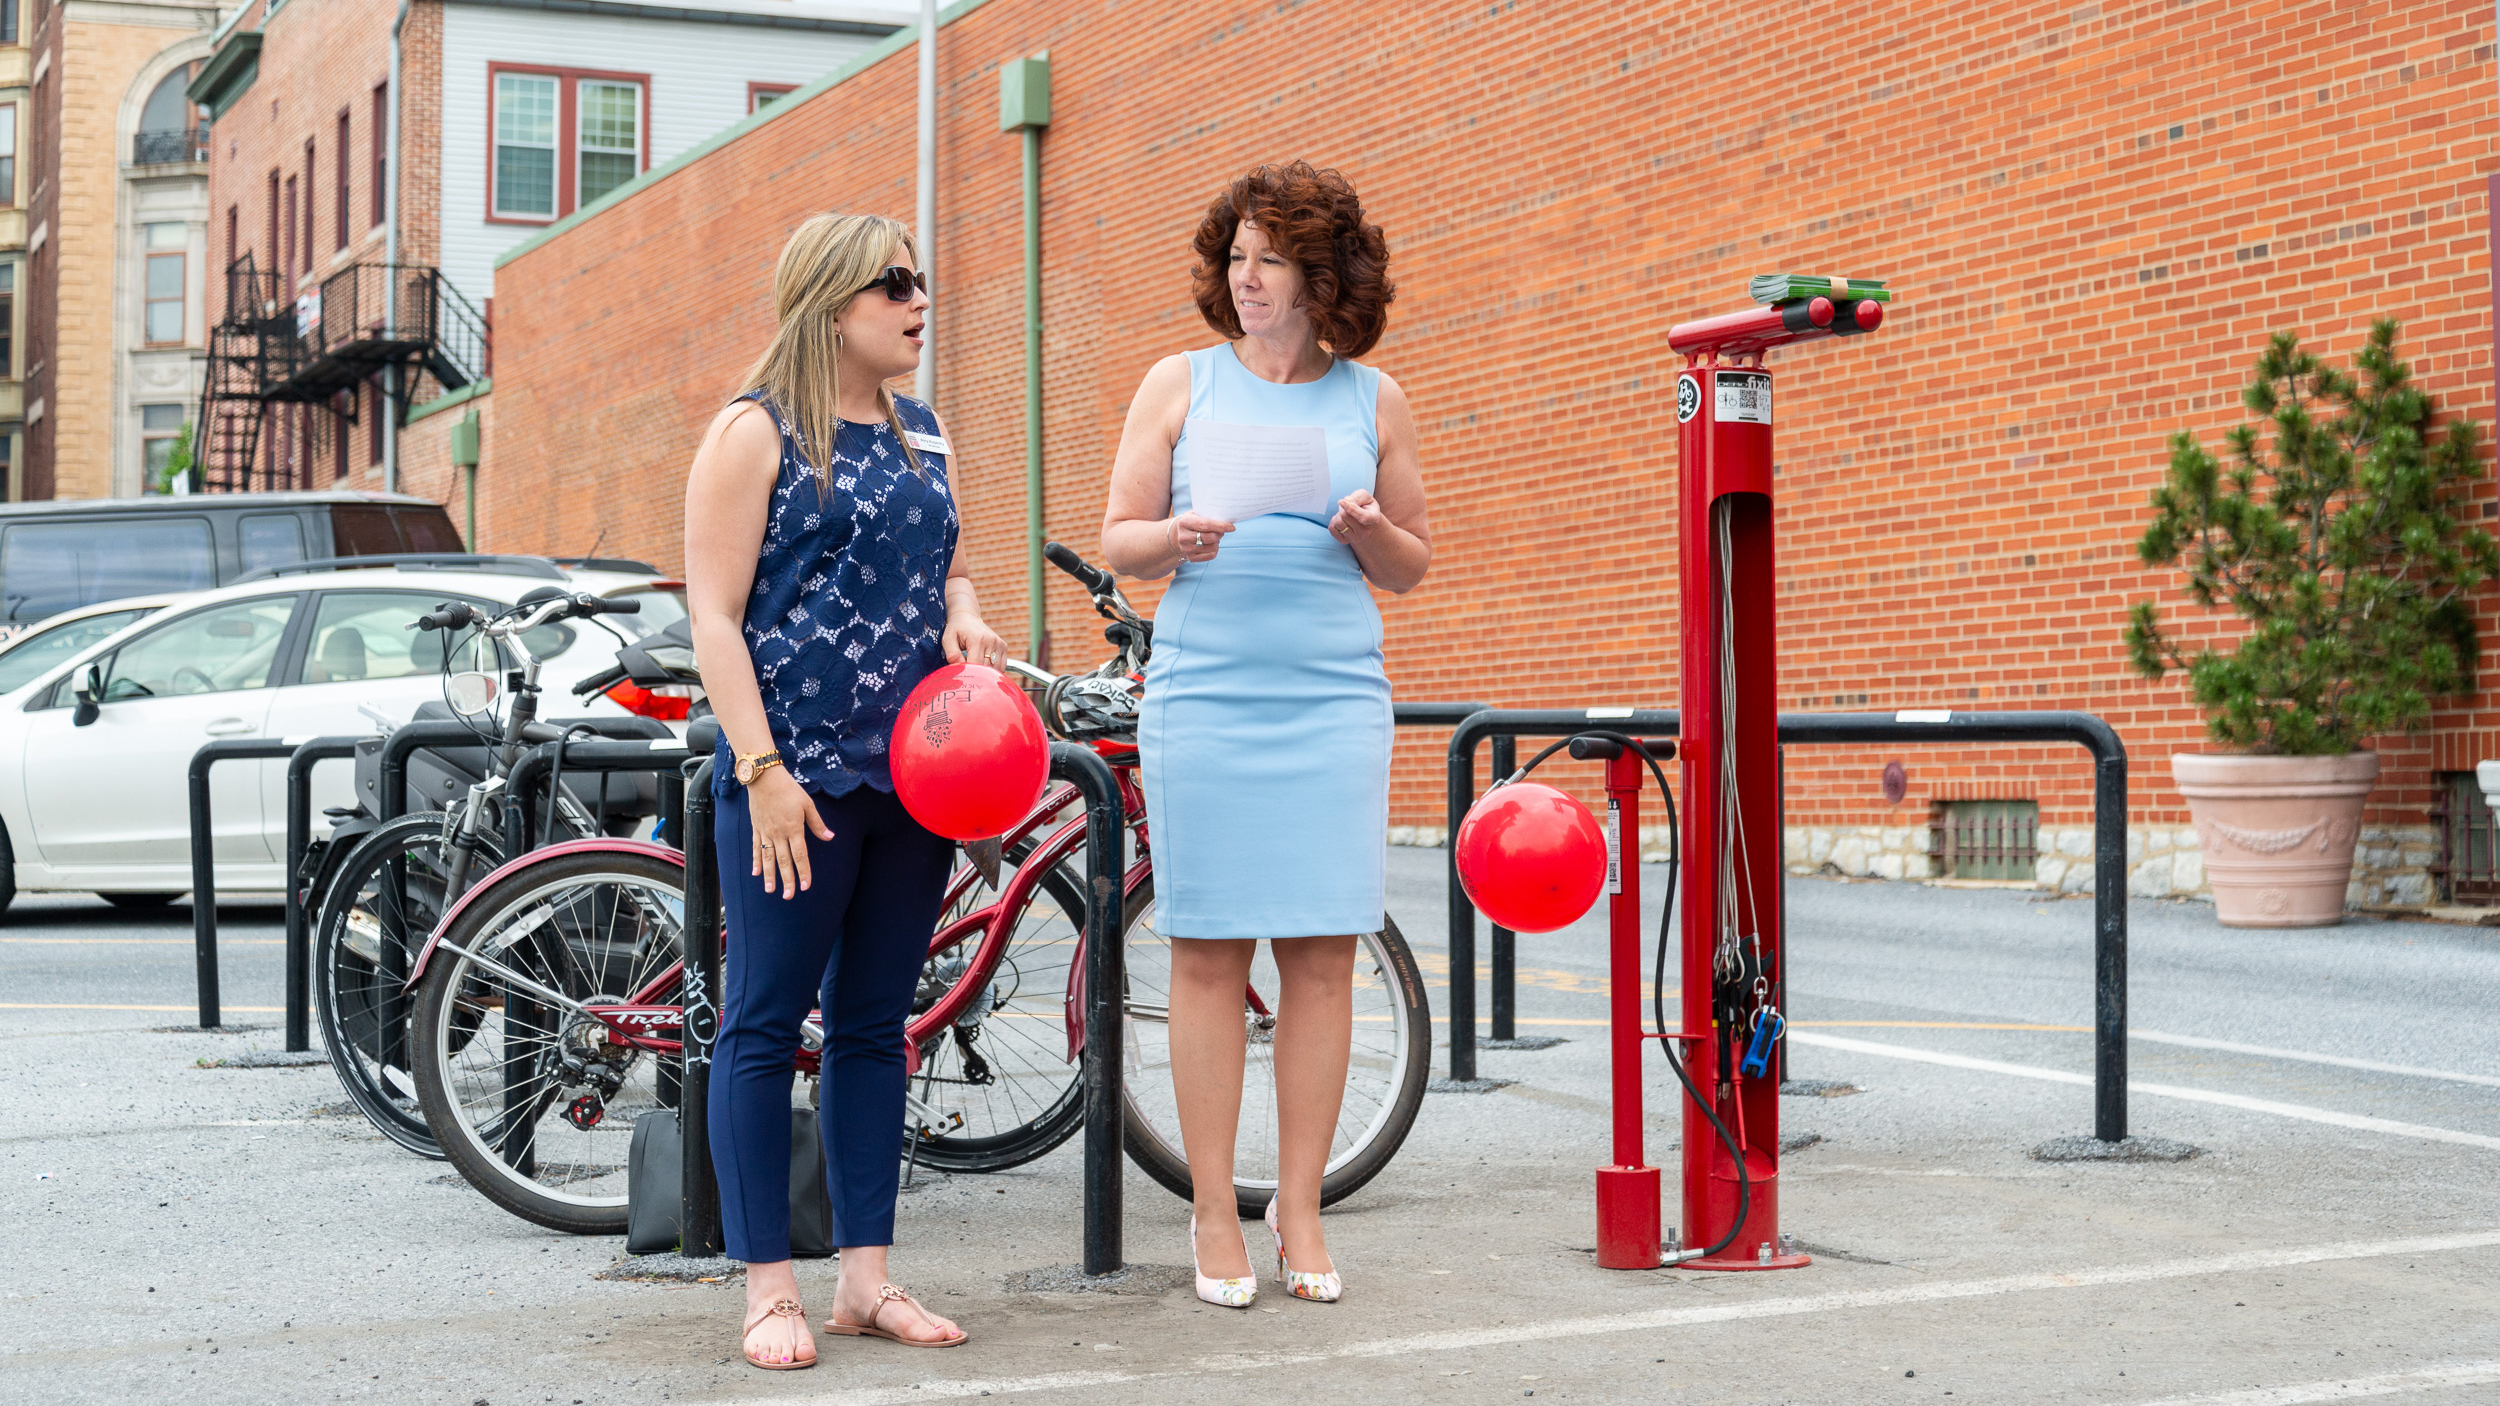 New bike repair station at the Farmers Market ready for public use [Photo Story]